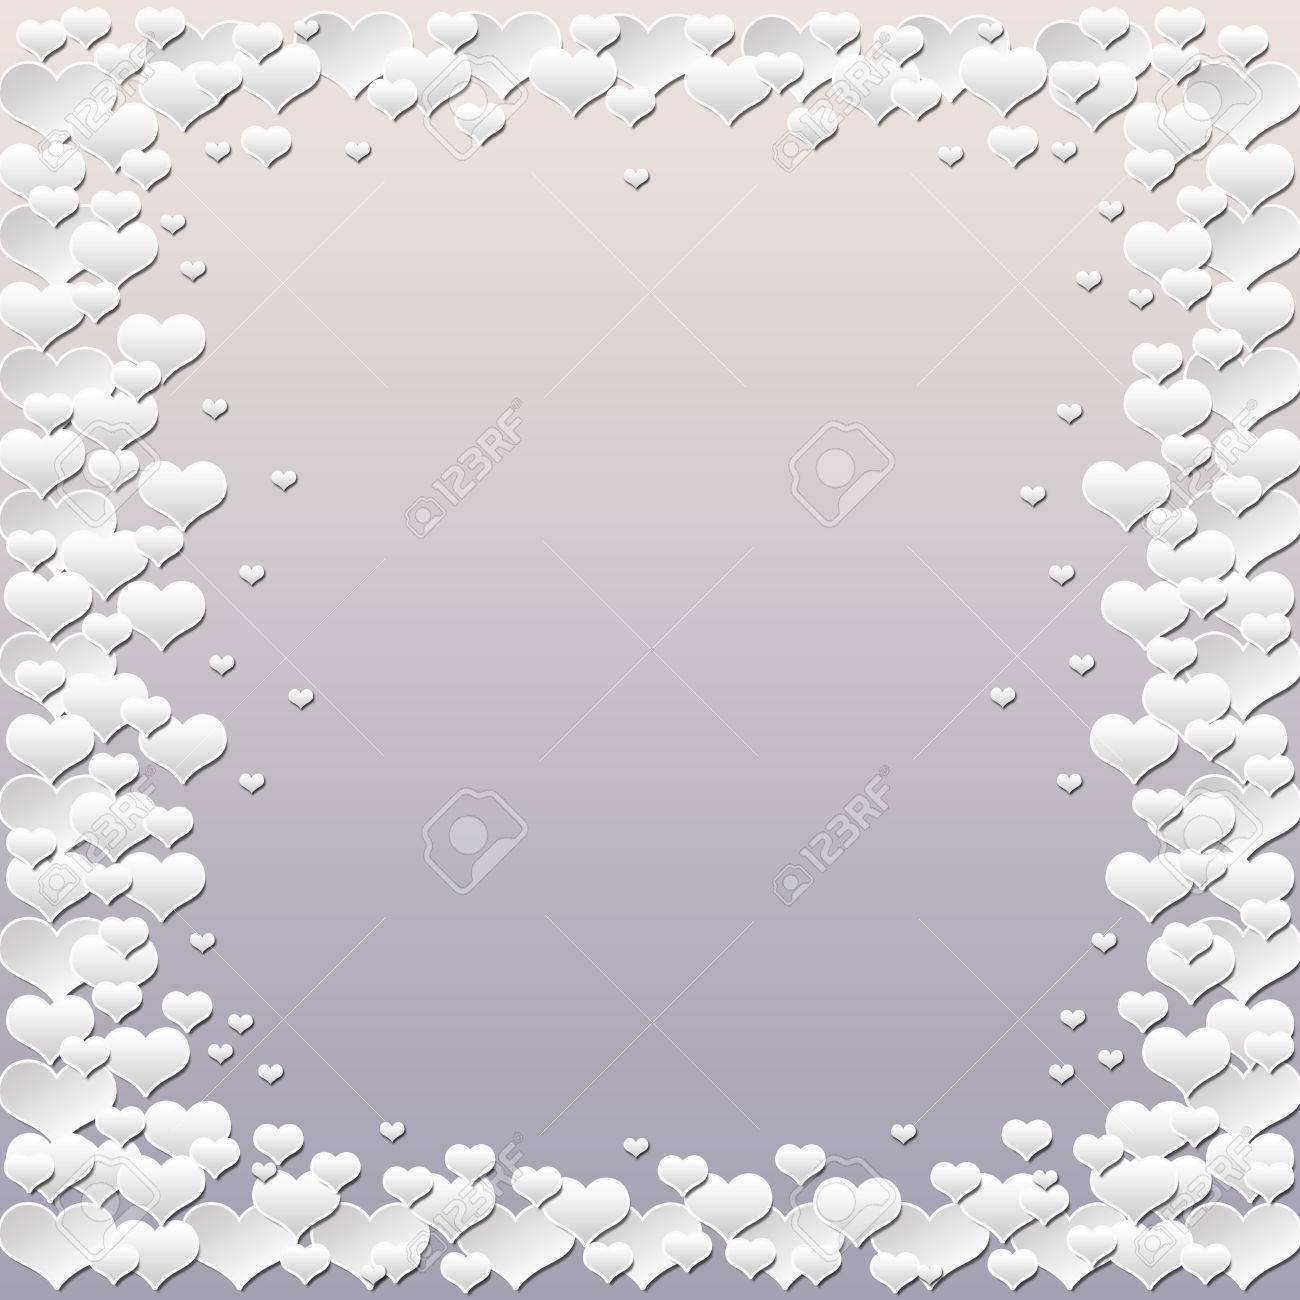 White hearts clouds background for weddings or valentine - 36305641